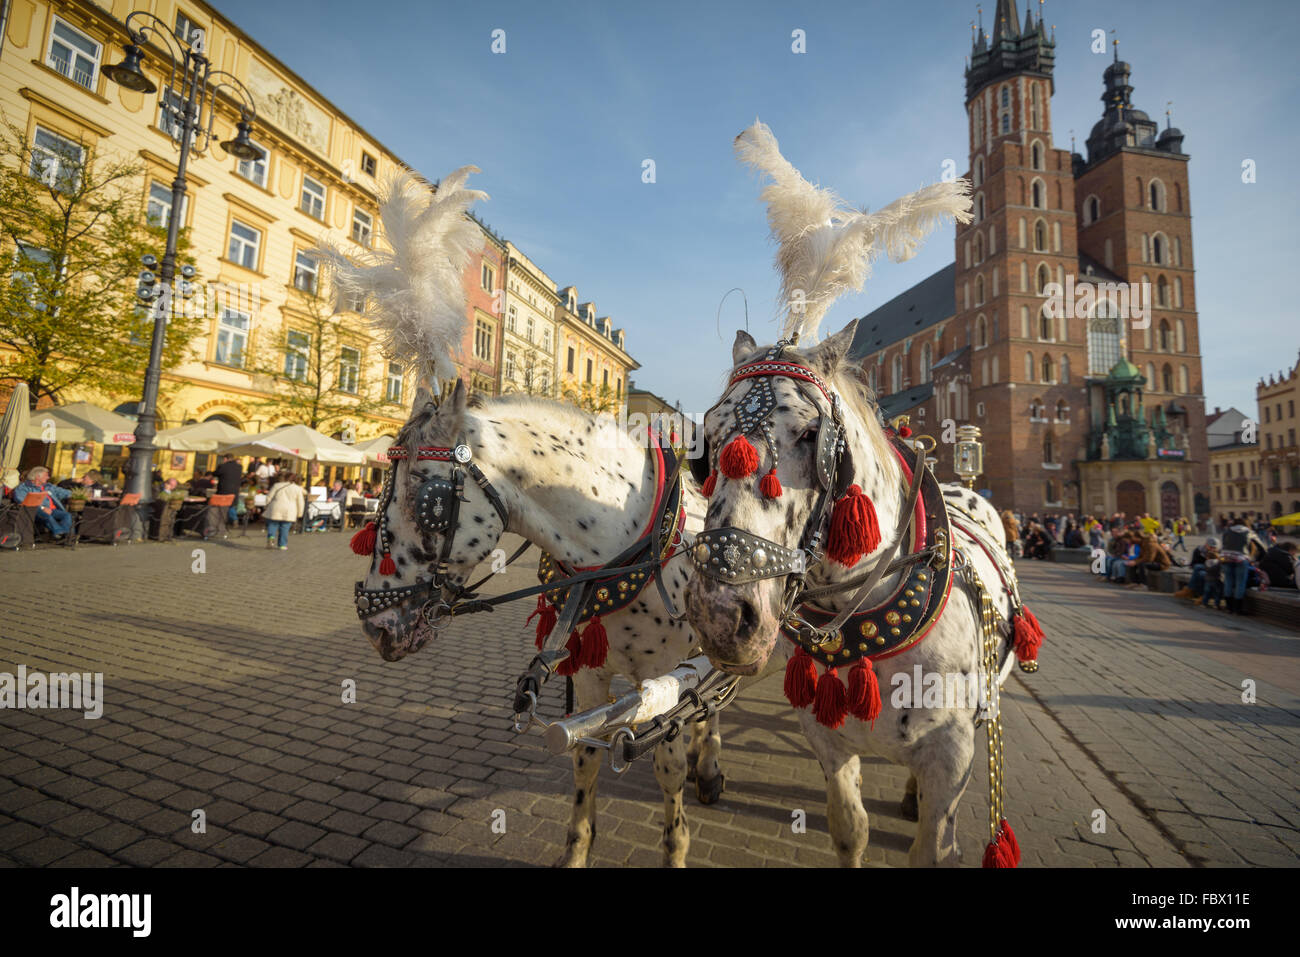 Cracovie, Pologne - 13 novembre 2015 : voitures à cheval à la place principale de Cracovie, en un Photo Stock